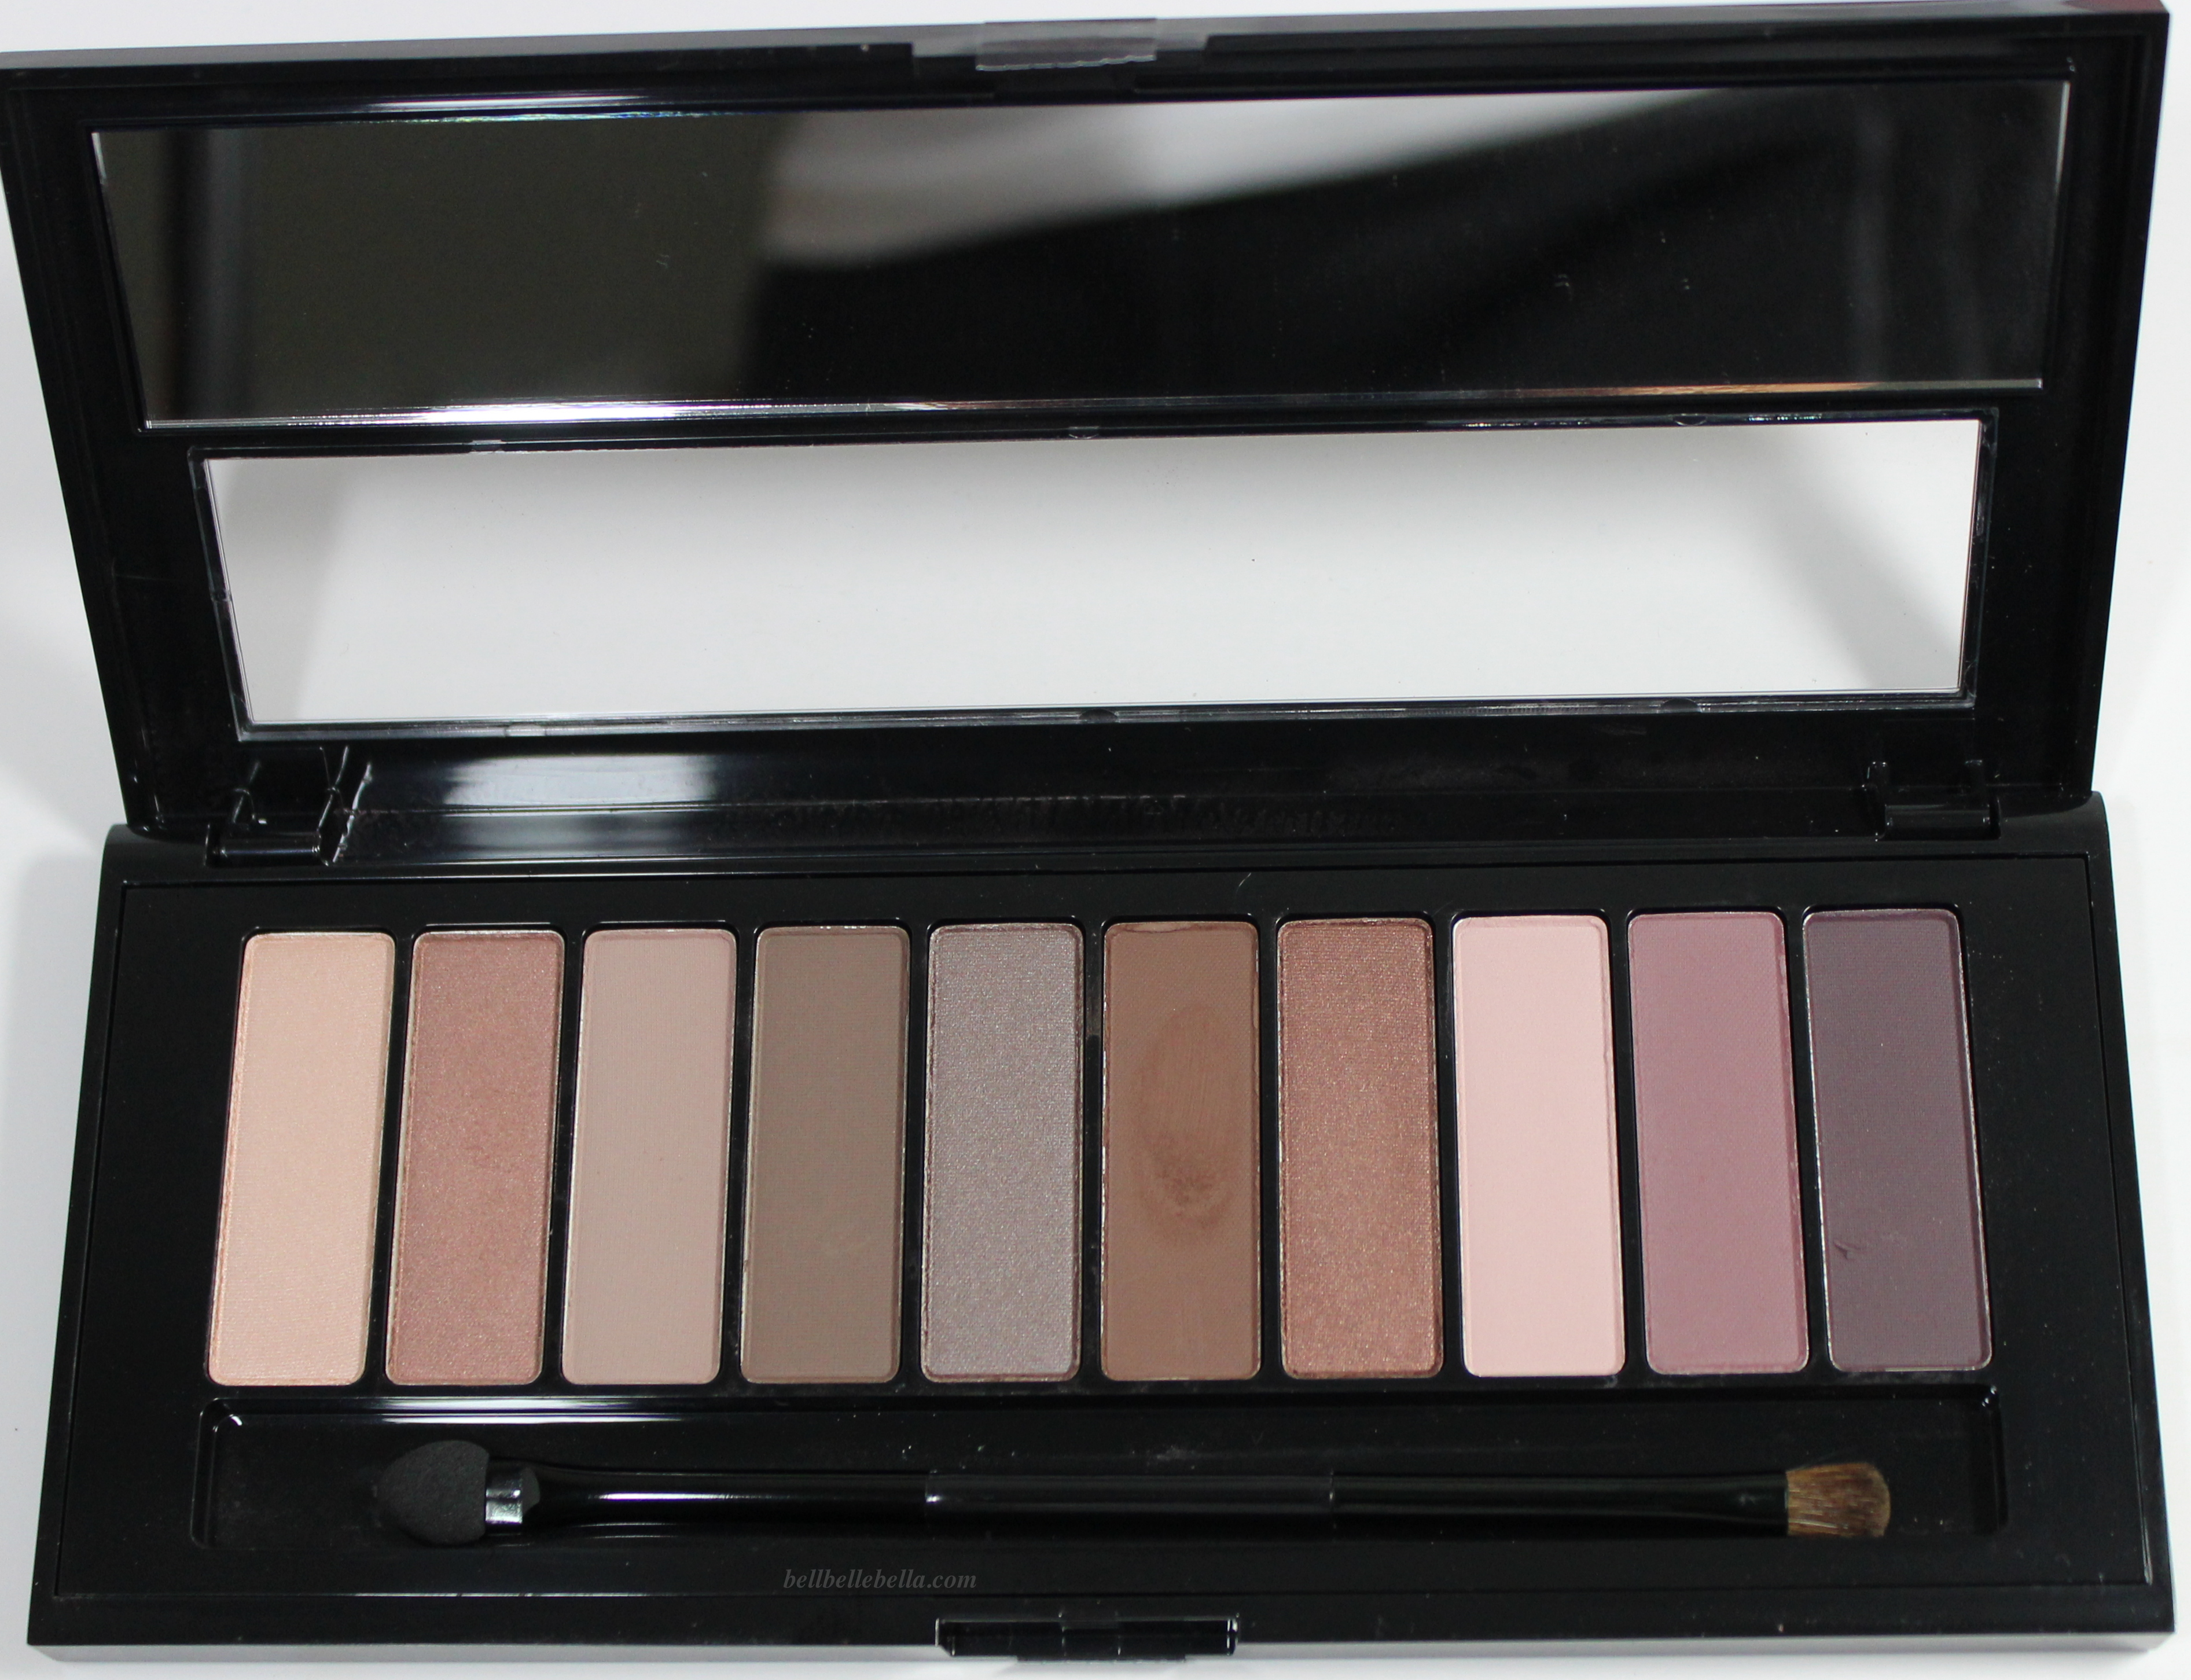 LOreal La Palette Nude 1 and 2 Swatches - BellBelleBella